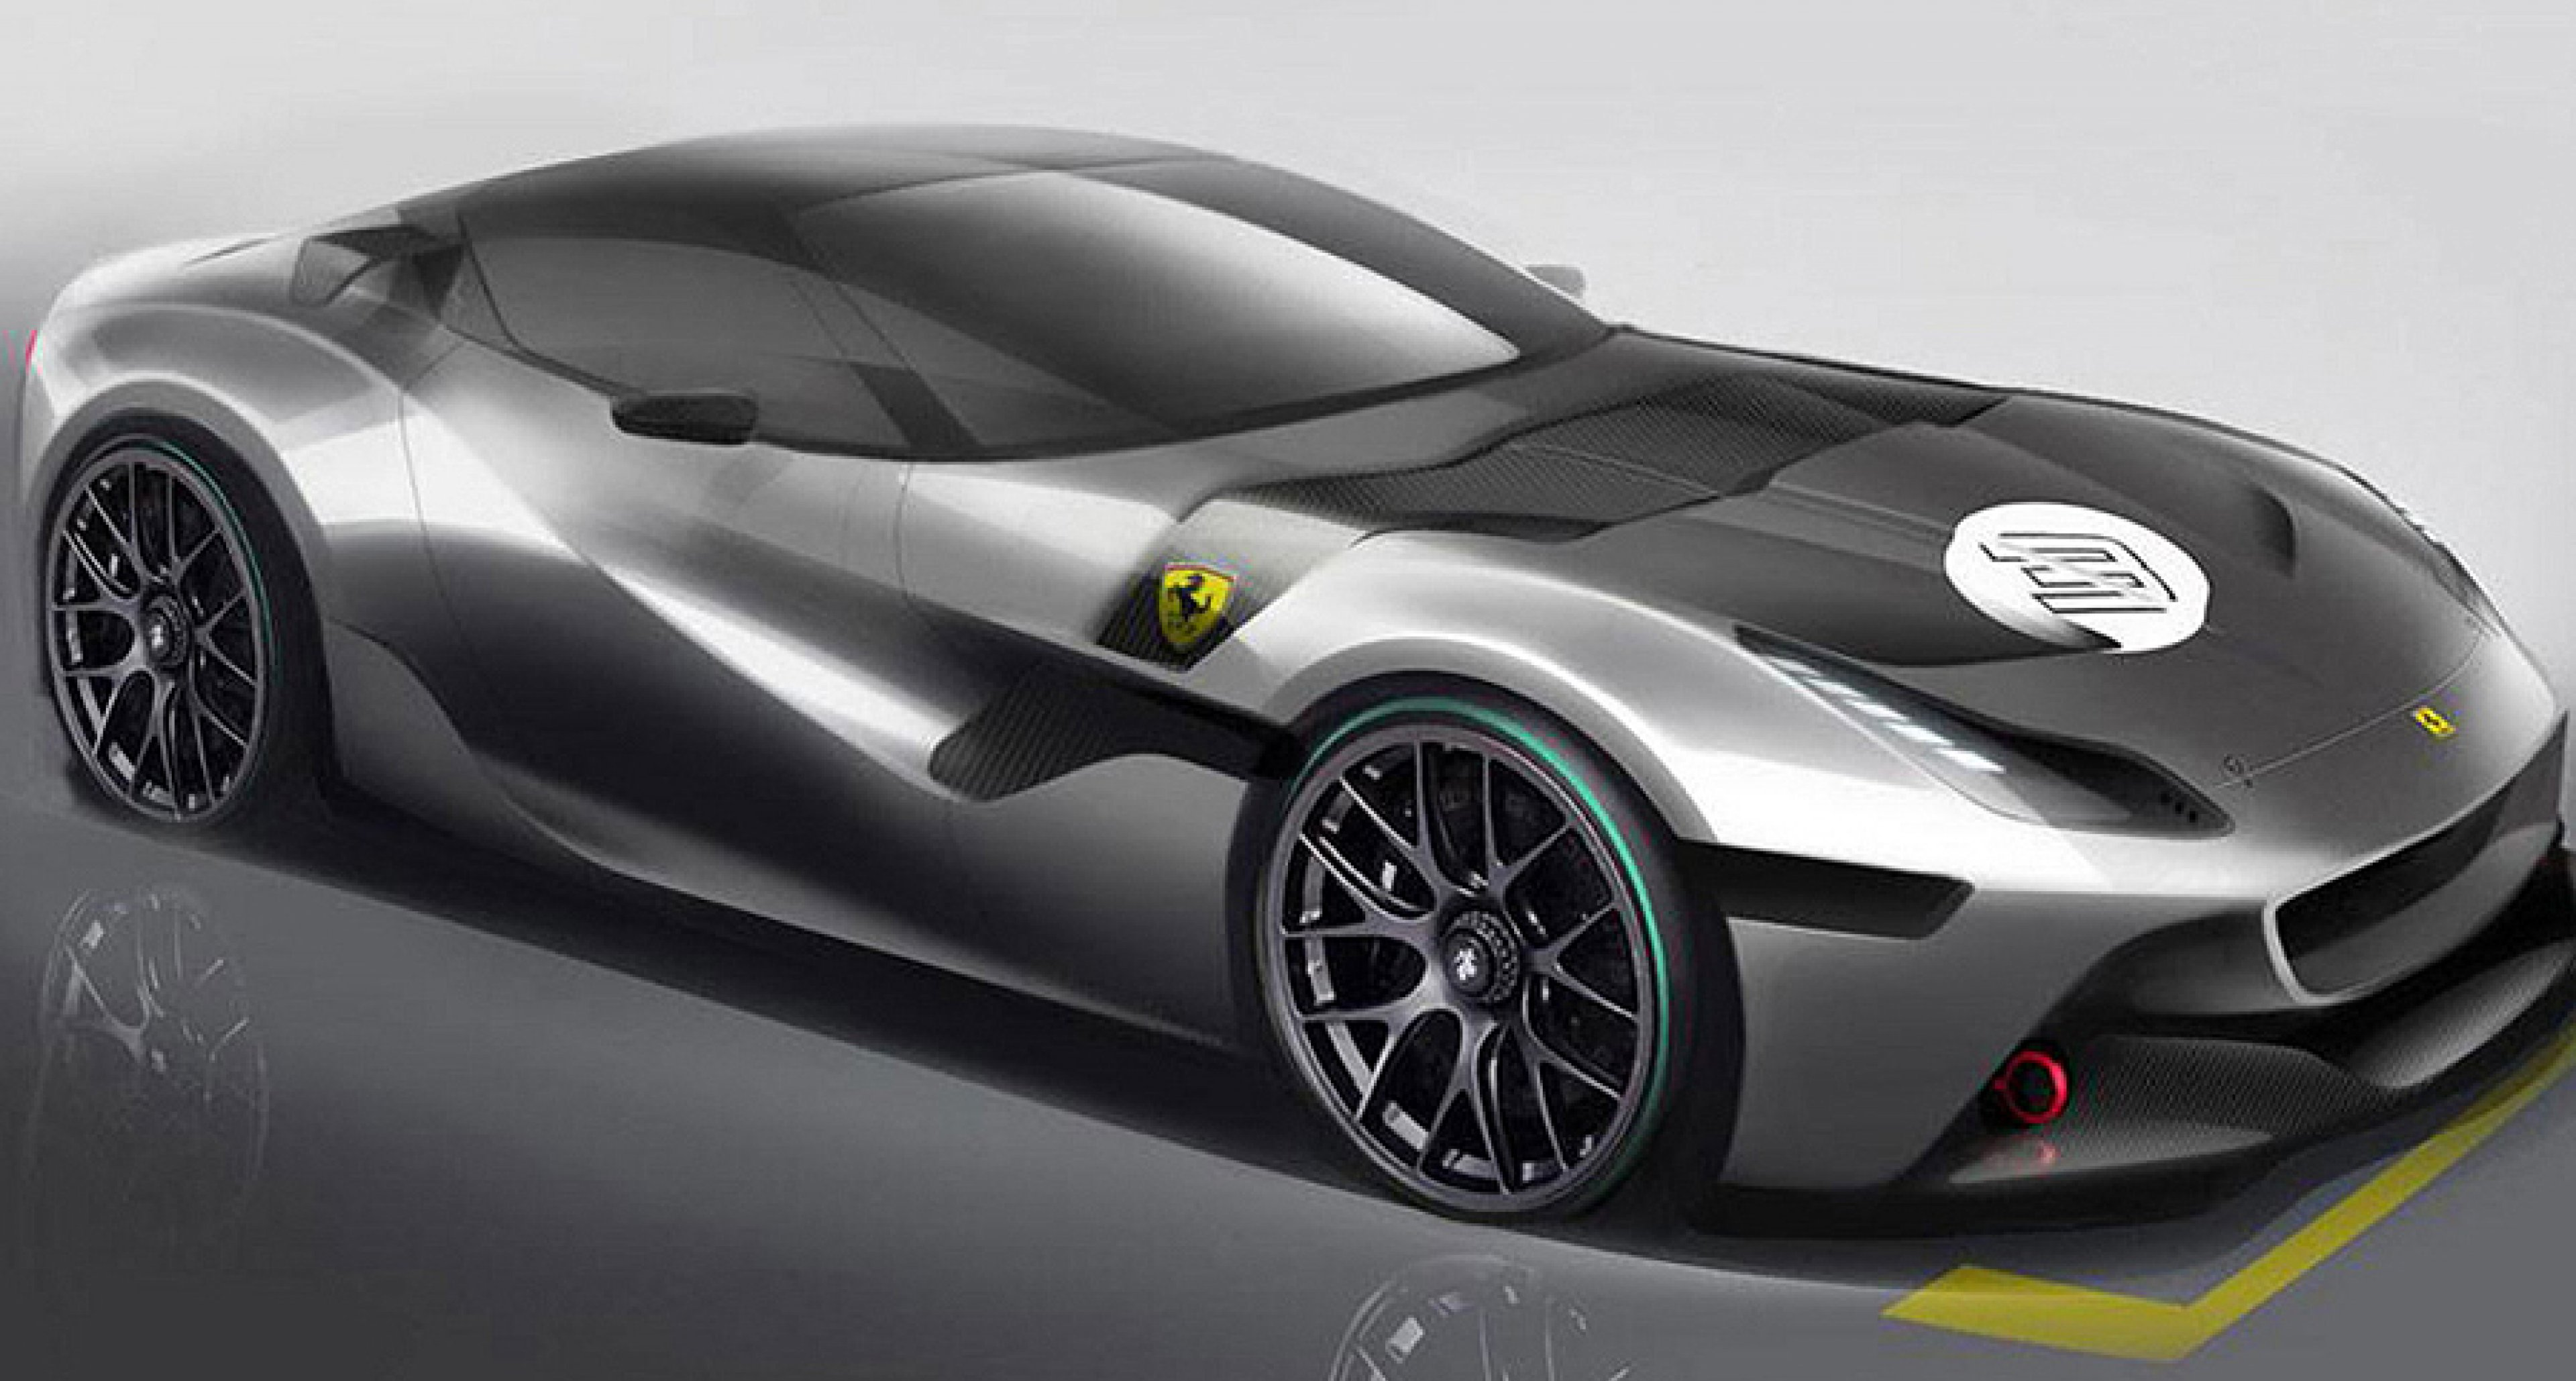 Ferrariu0027s Latest Special Projects Car, Based On A 599 GTO   Classic Driver  Magazine